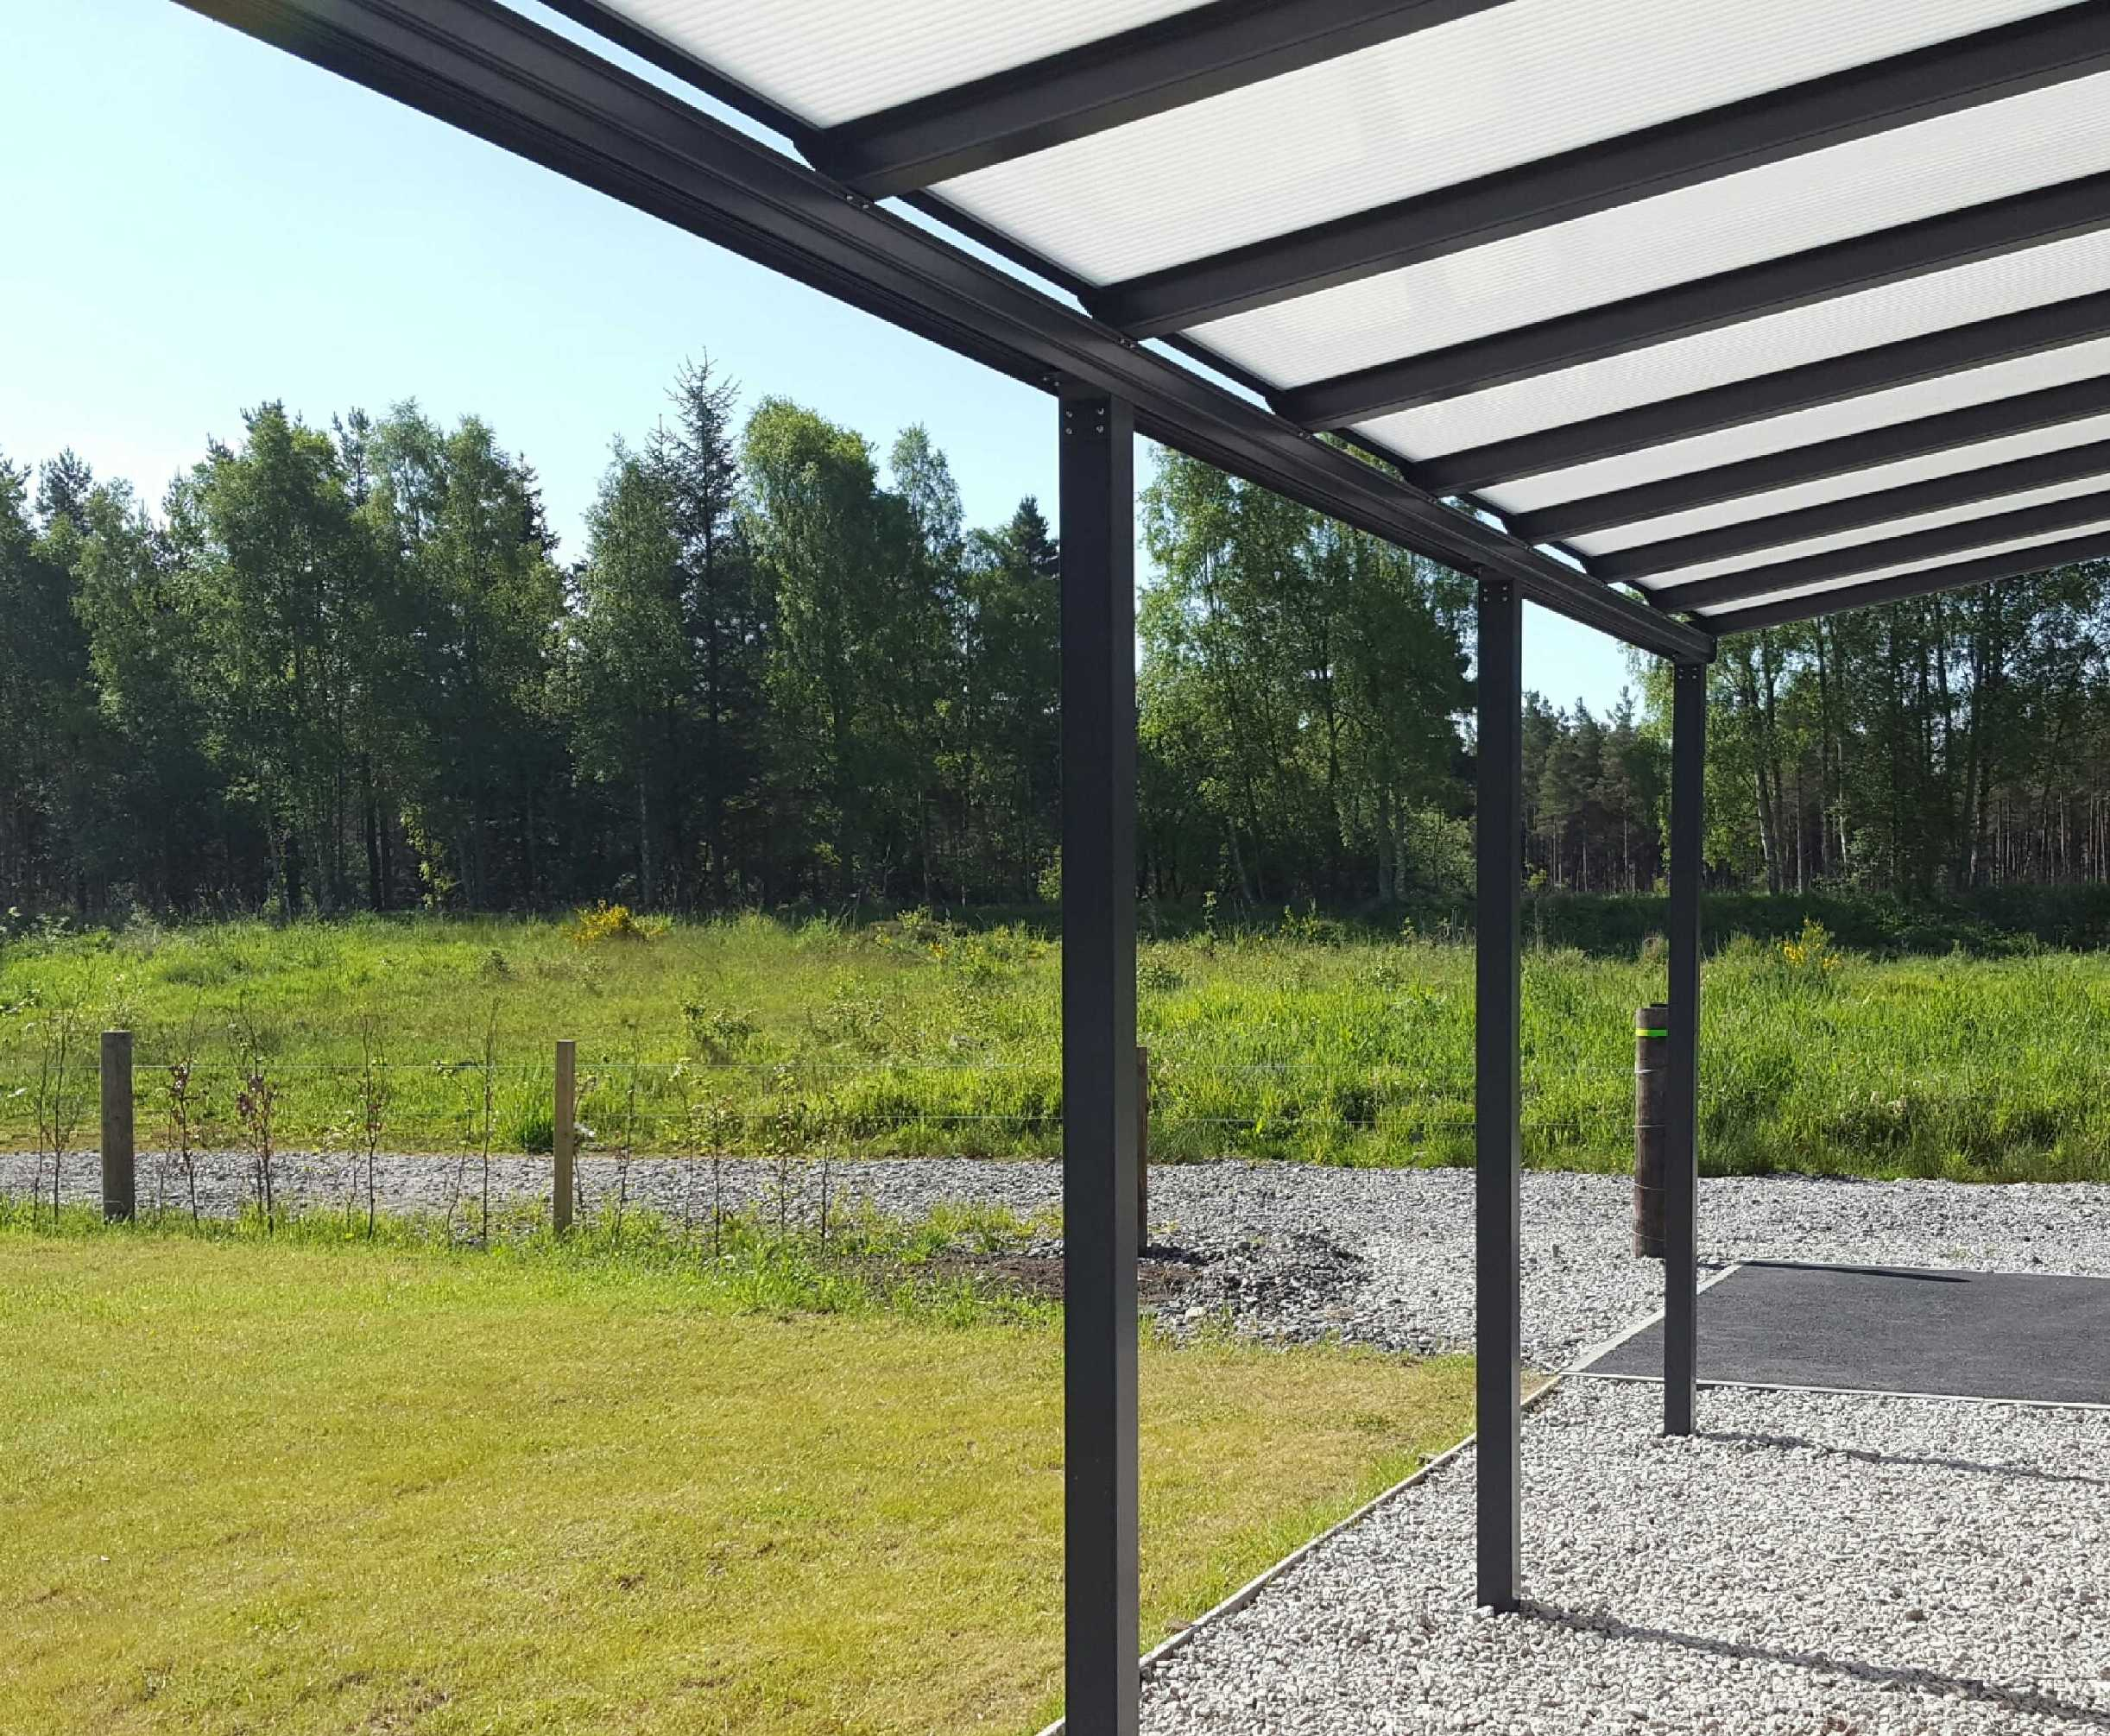 Omega Smart Lean-To Canopy, Anthracite Grey, UNGLAZED for 6mm Glazing - 4.2m (W) x 2.0m (P), (3) Supporting Posts